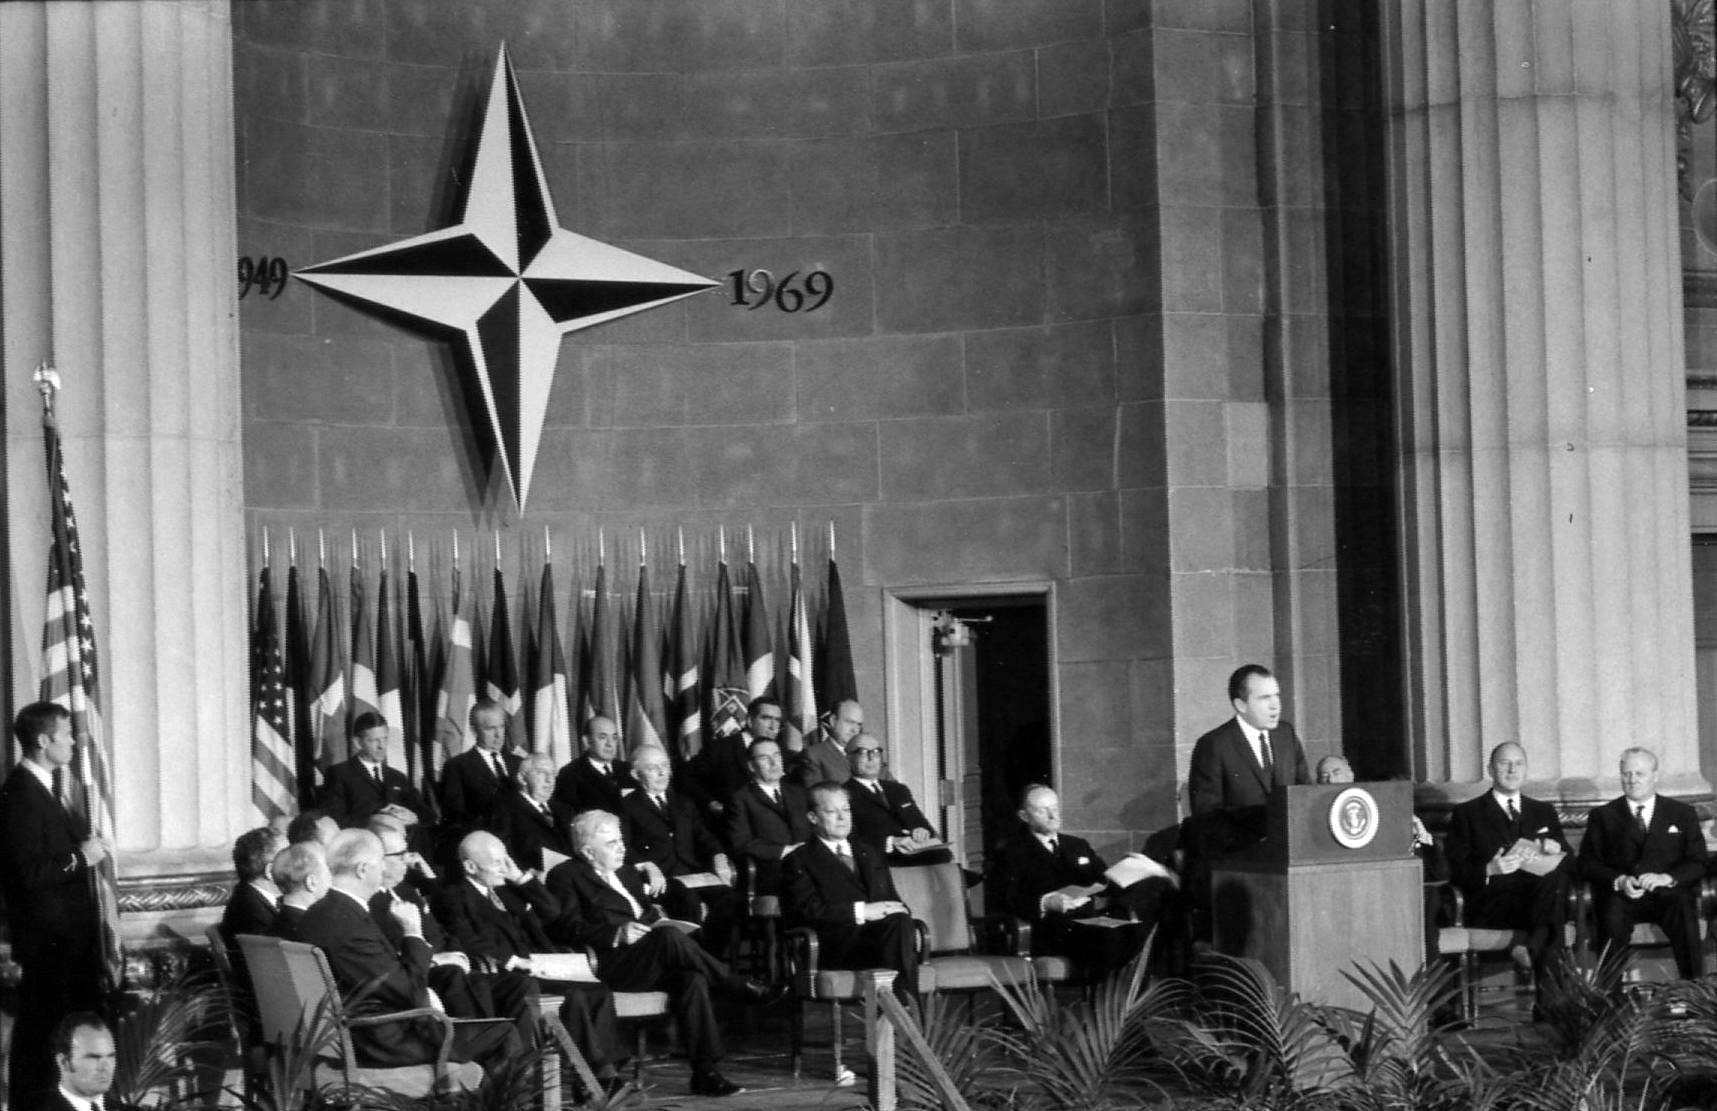 President Nixon addresses the commemorative session of the North Atlantic Council on April 10, 1969.